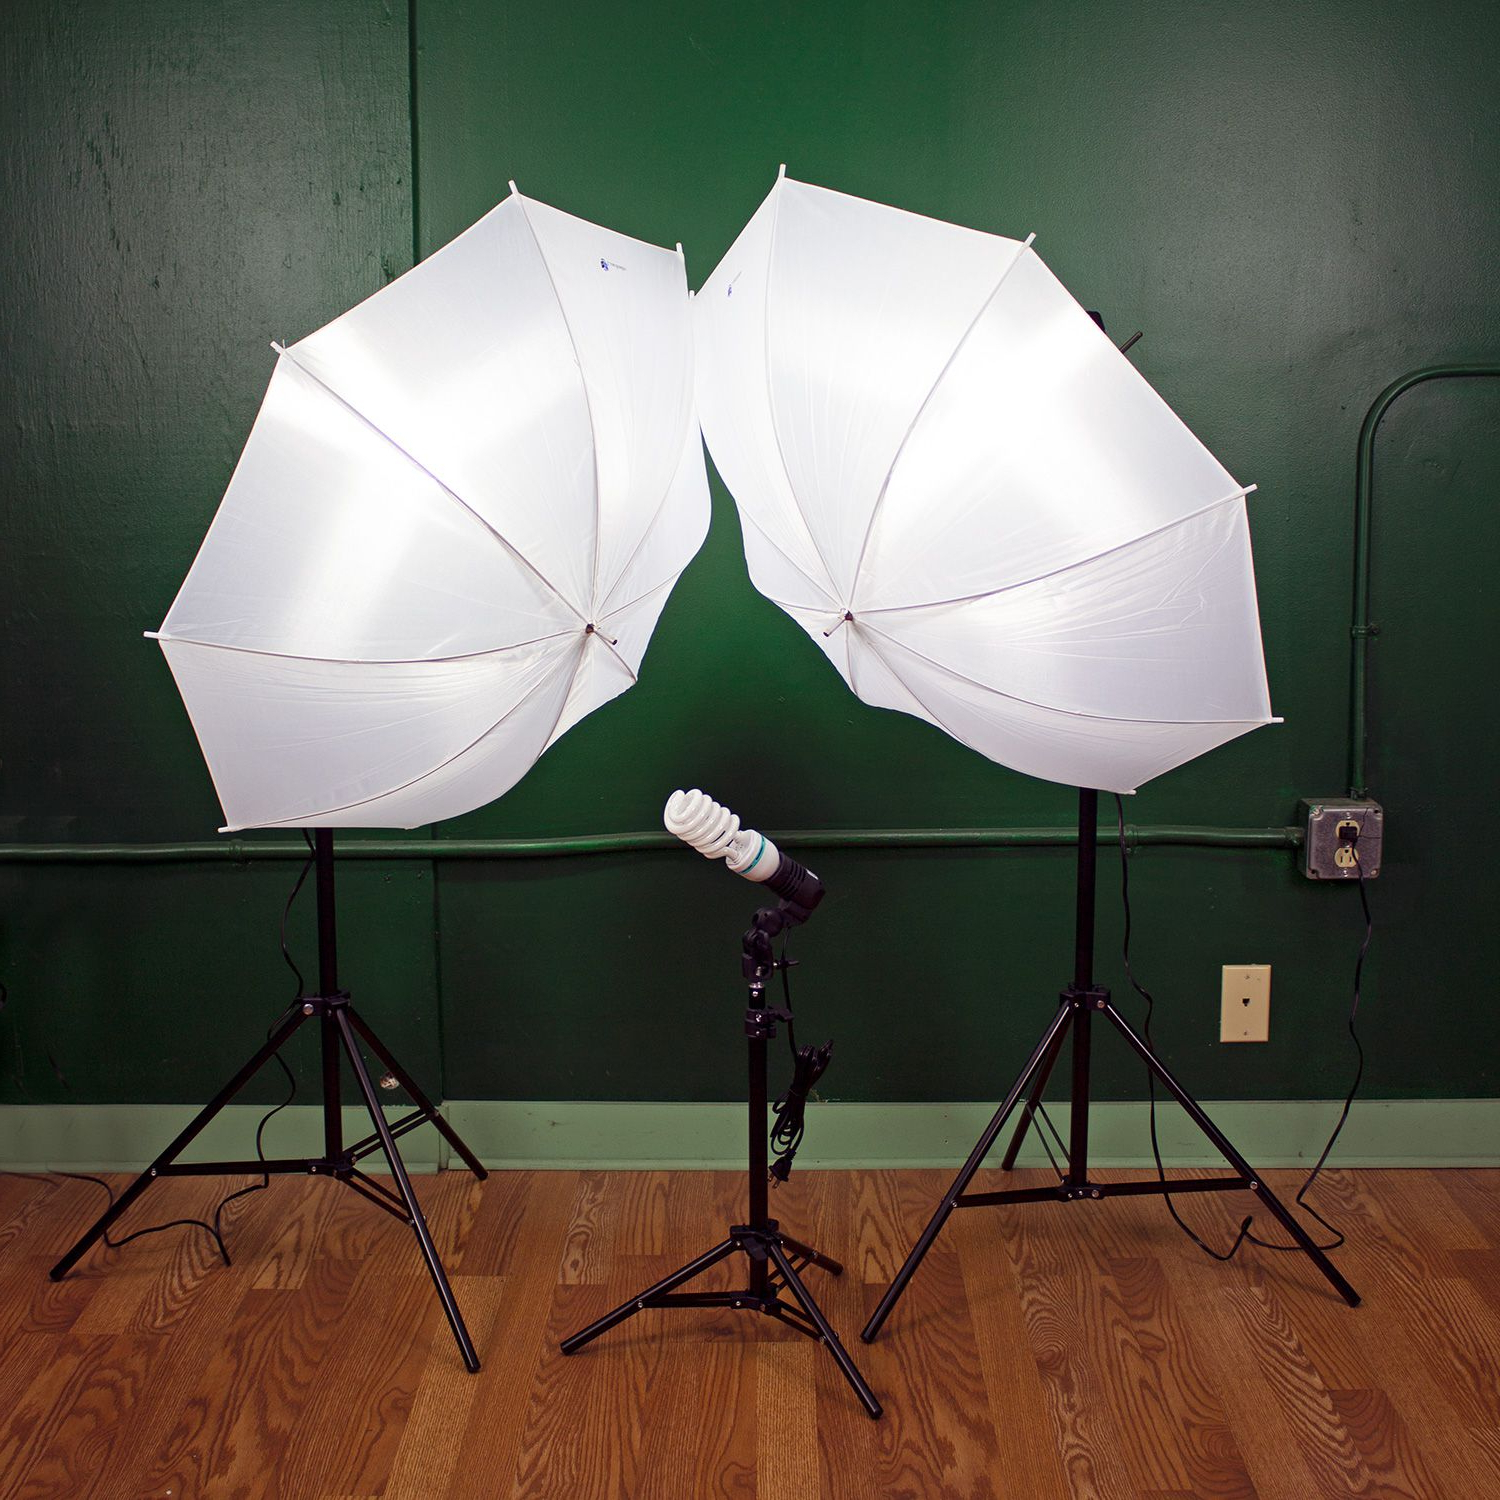 Zeman Market Umbrellas Throughout Well Liked Limostudio Lms103 Lighting Kit Review (Gallery 12 of 20)